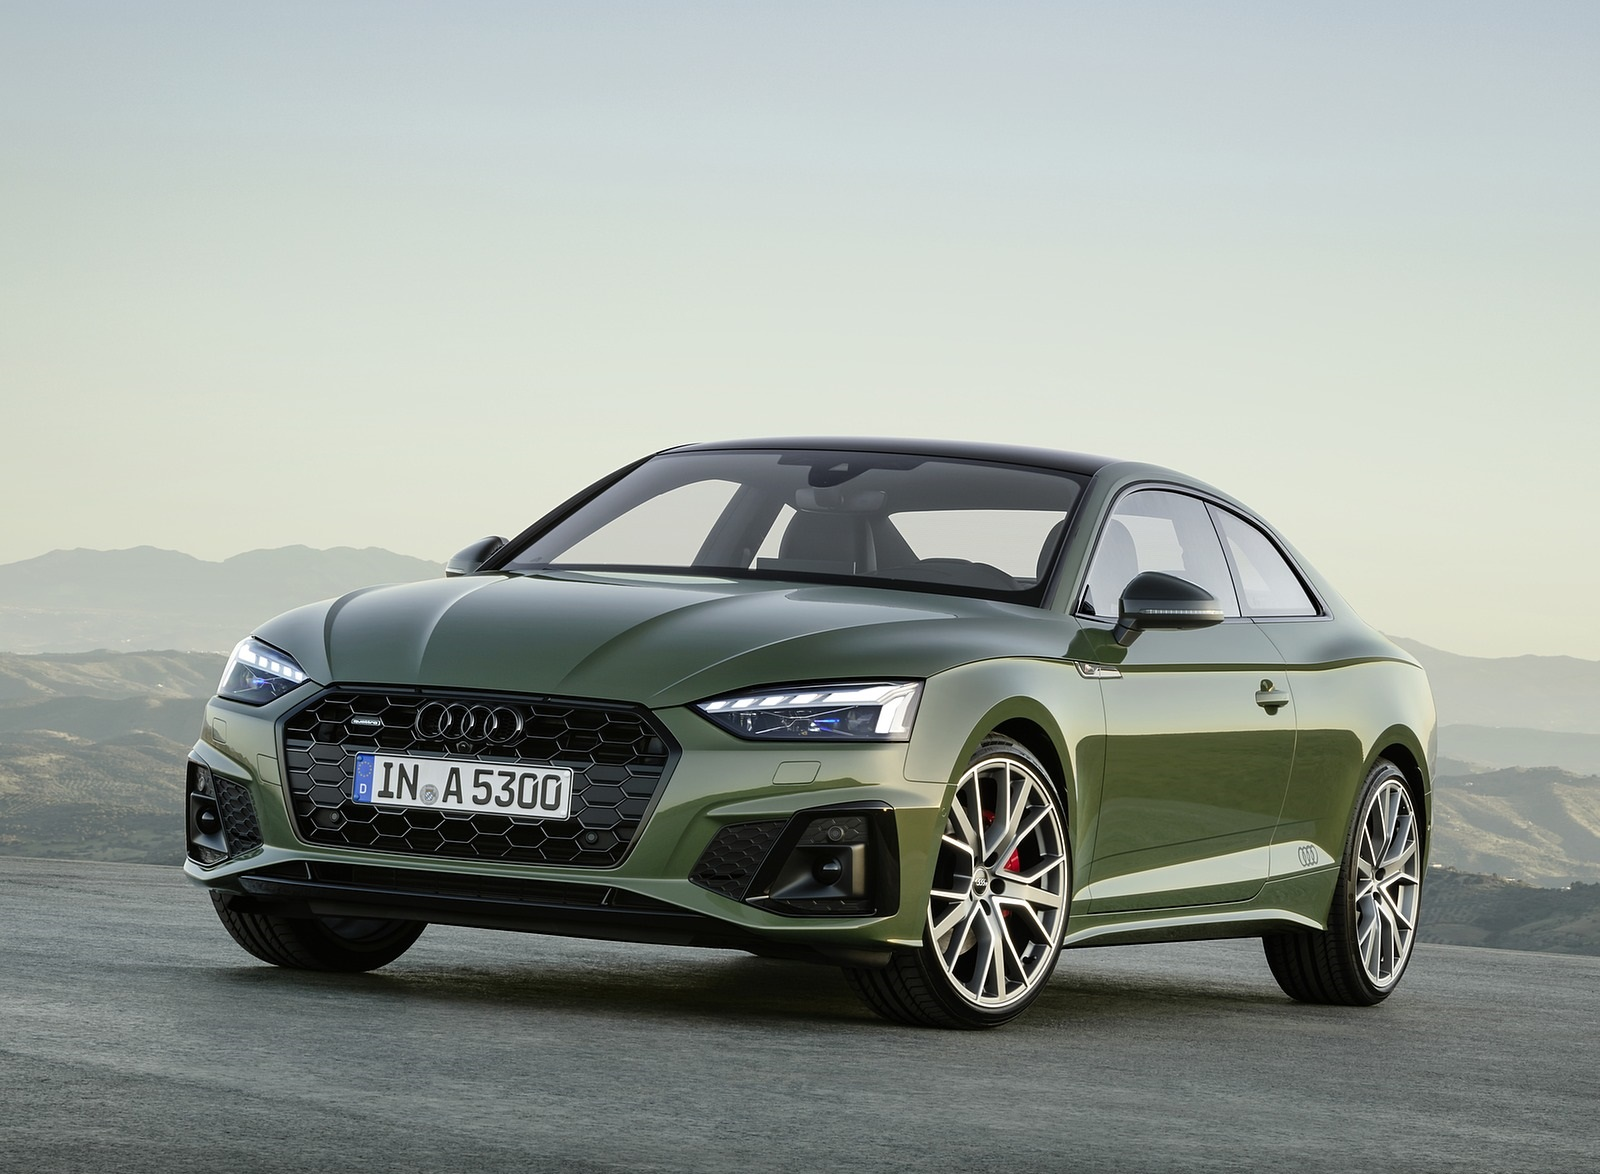 2020 Audi A5 Coupe (Color: District Green) Front Three-Quarter Wallpapers (10)